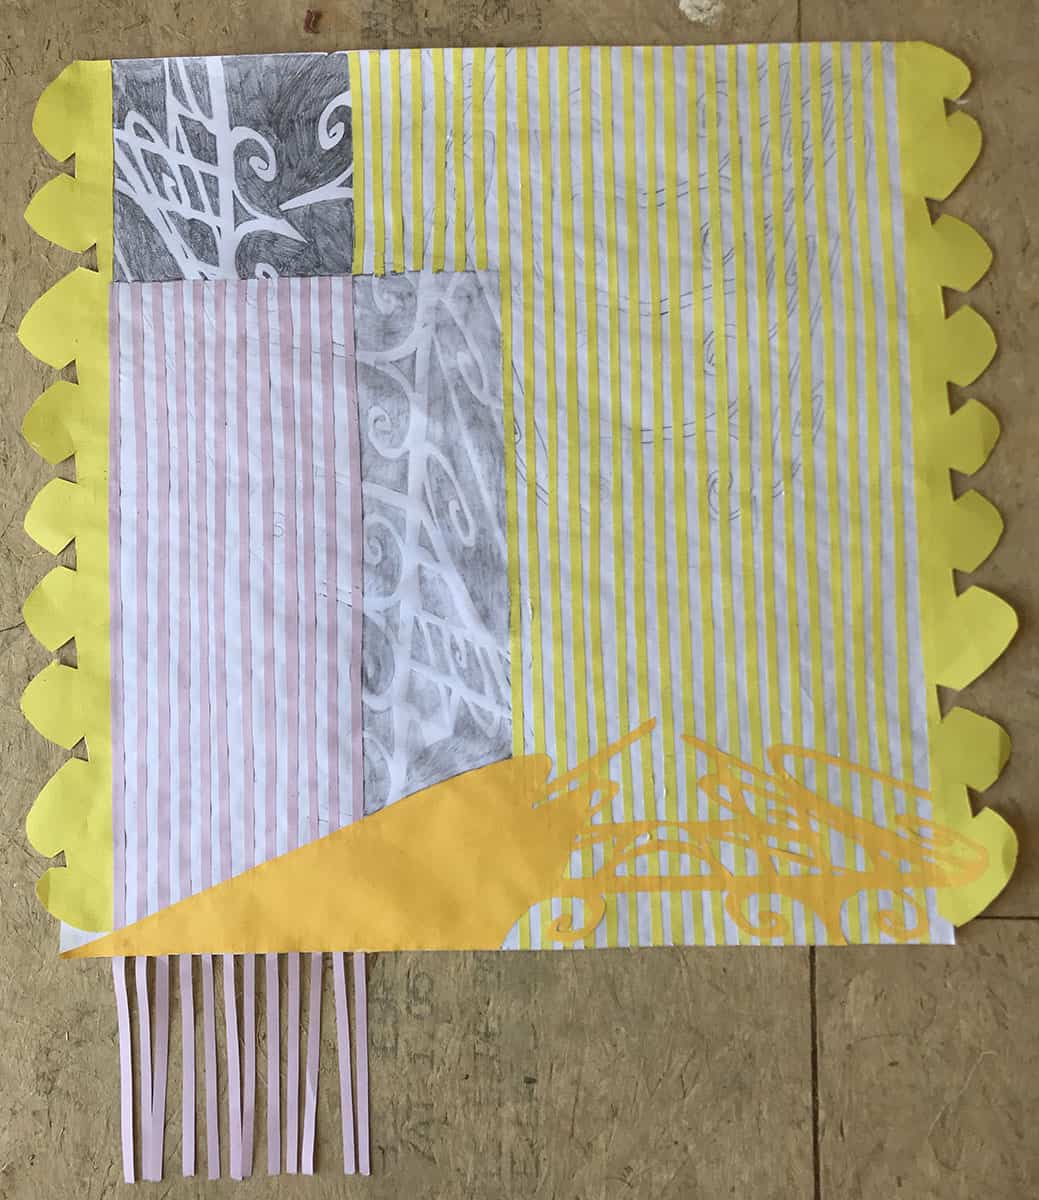 print with stripe pattern, abstract drawn shapes, scalloped edge and fringe